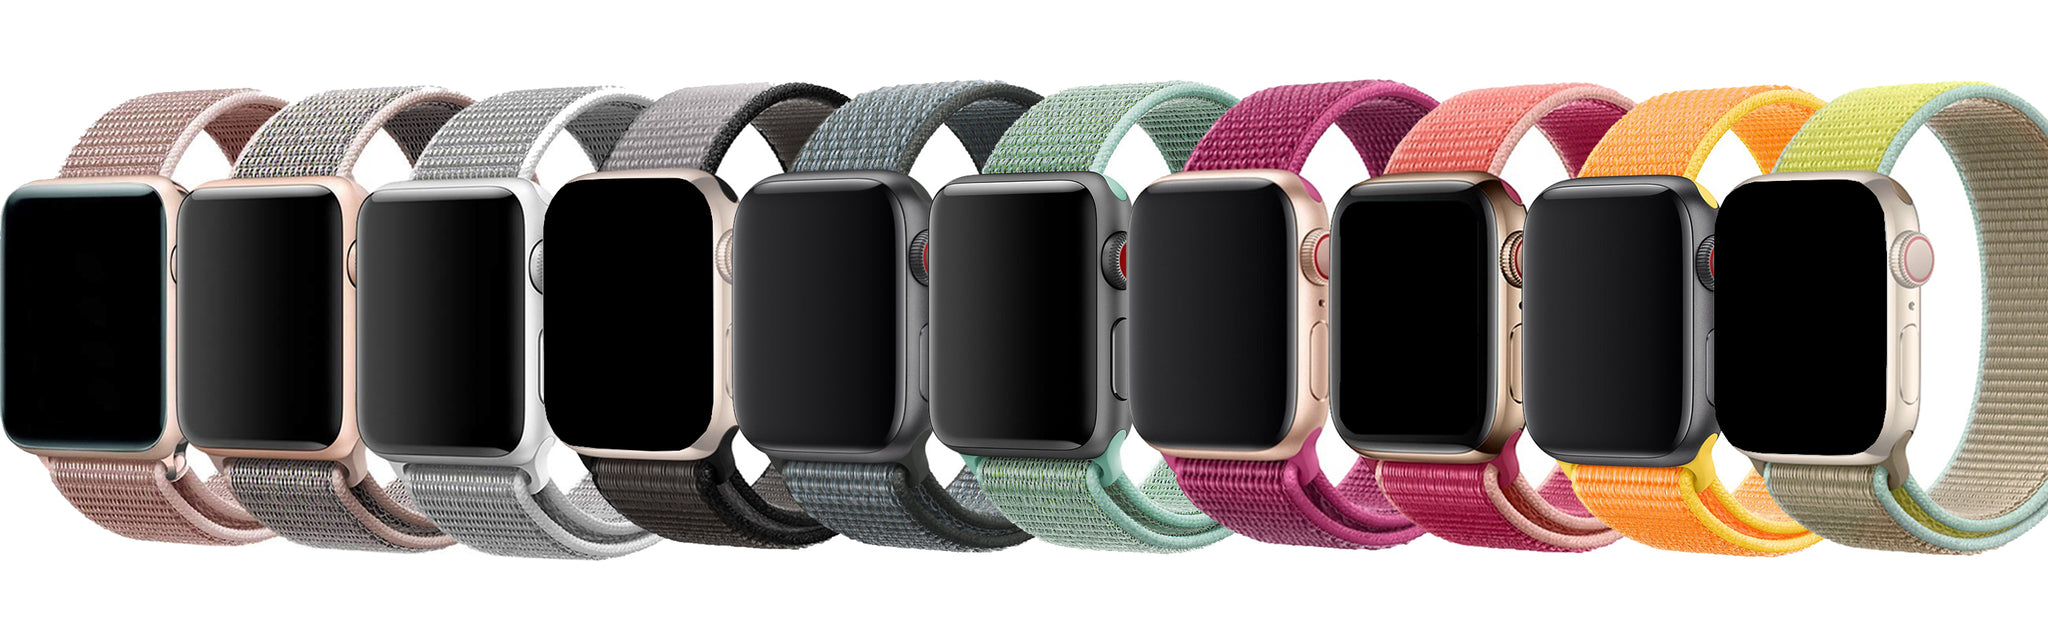 Apple Watch Nylon Loop Straps | Blend.Style